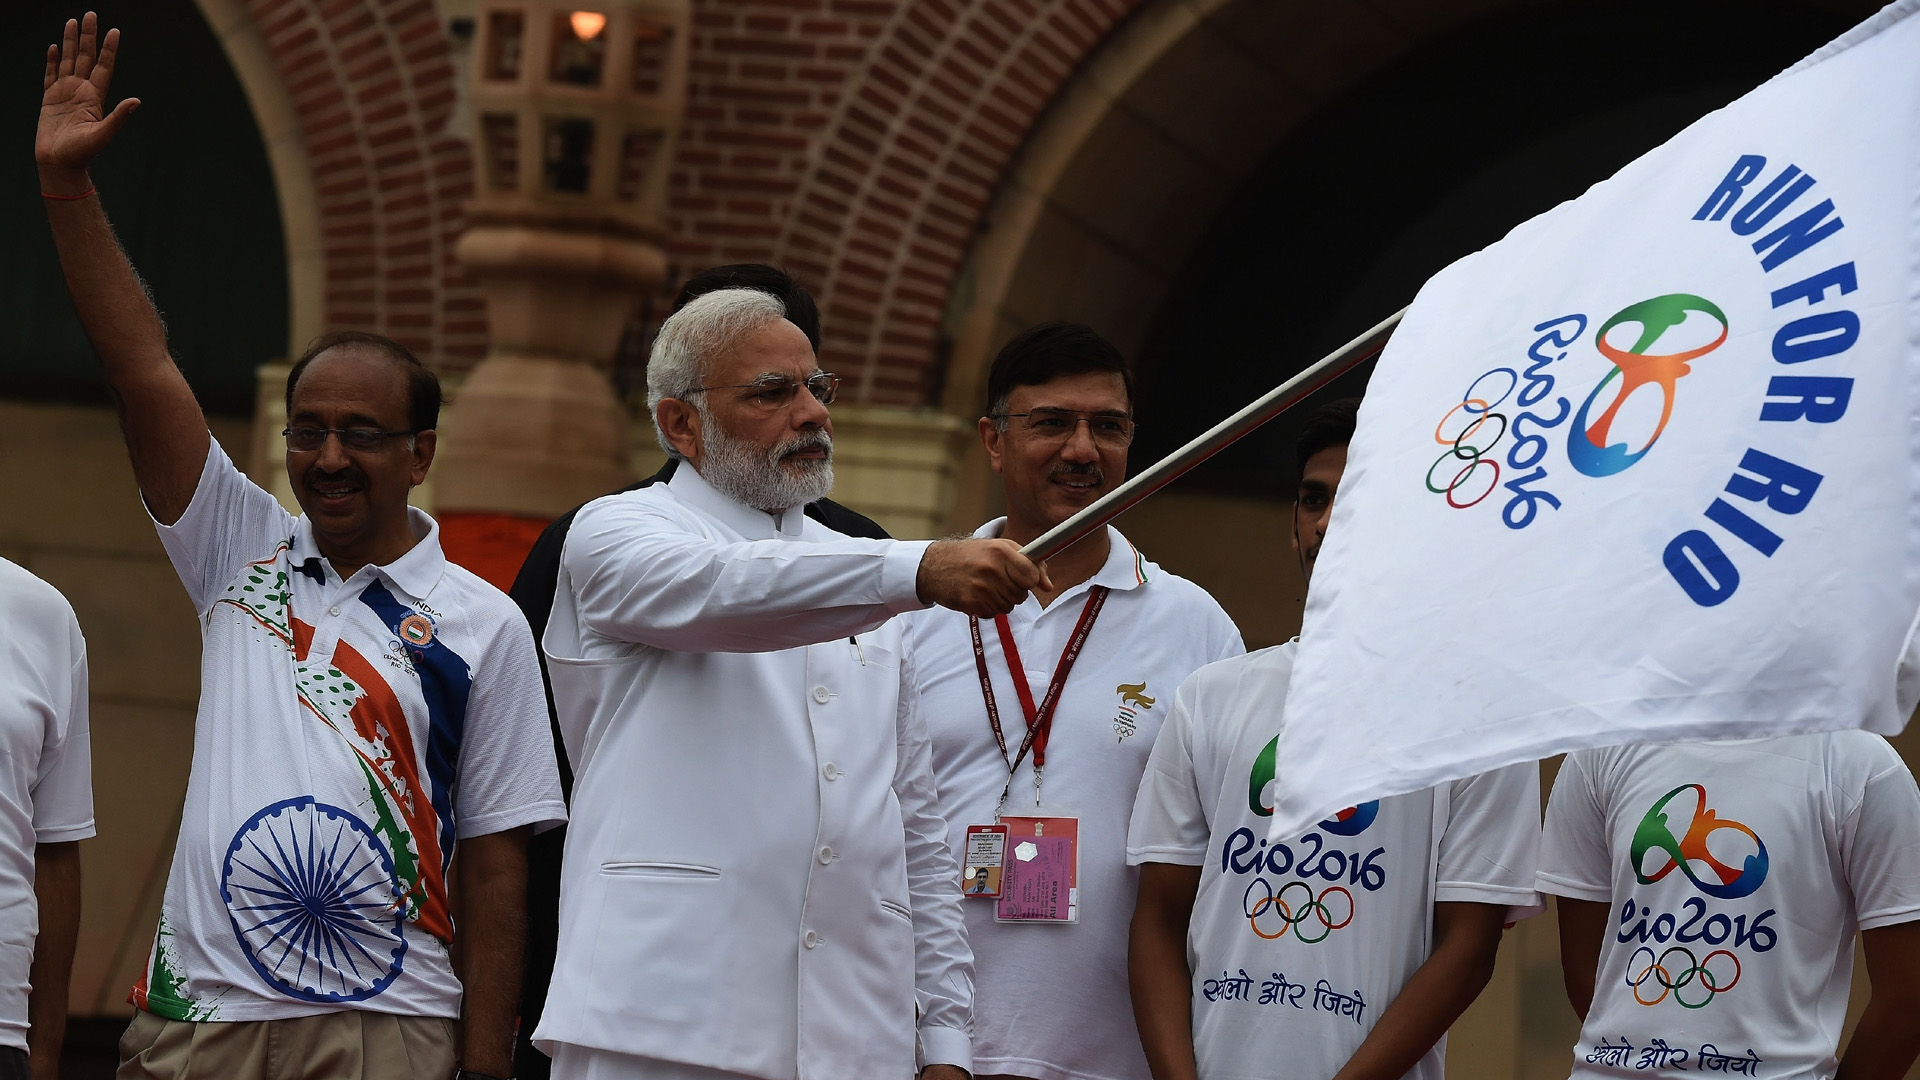 Sports Ministry will launch sports portal for budding sportspersons: PM Modi